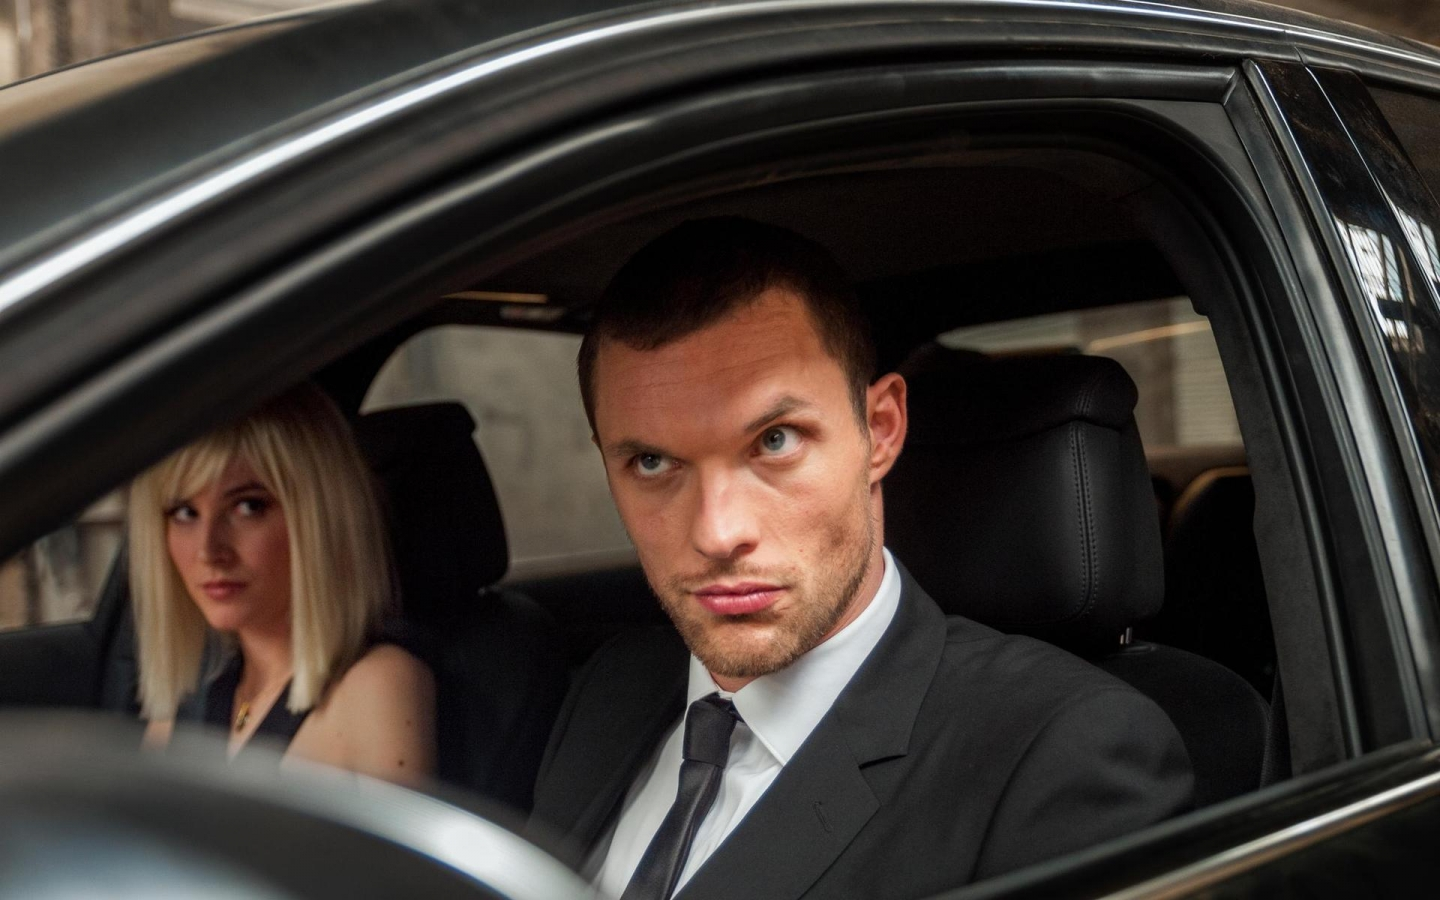 Transporter Refueled for 1440 x 900 widescreen resolution